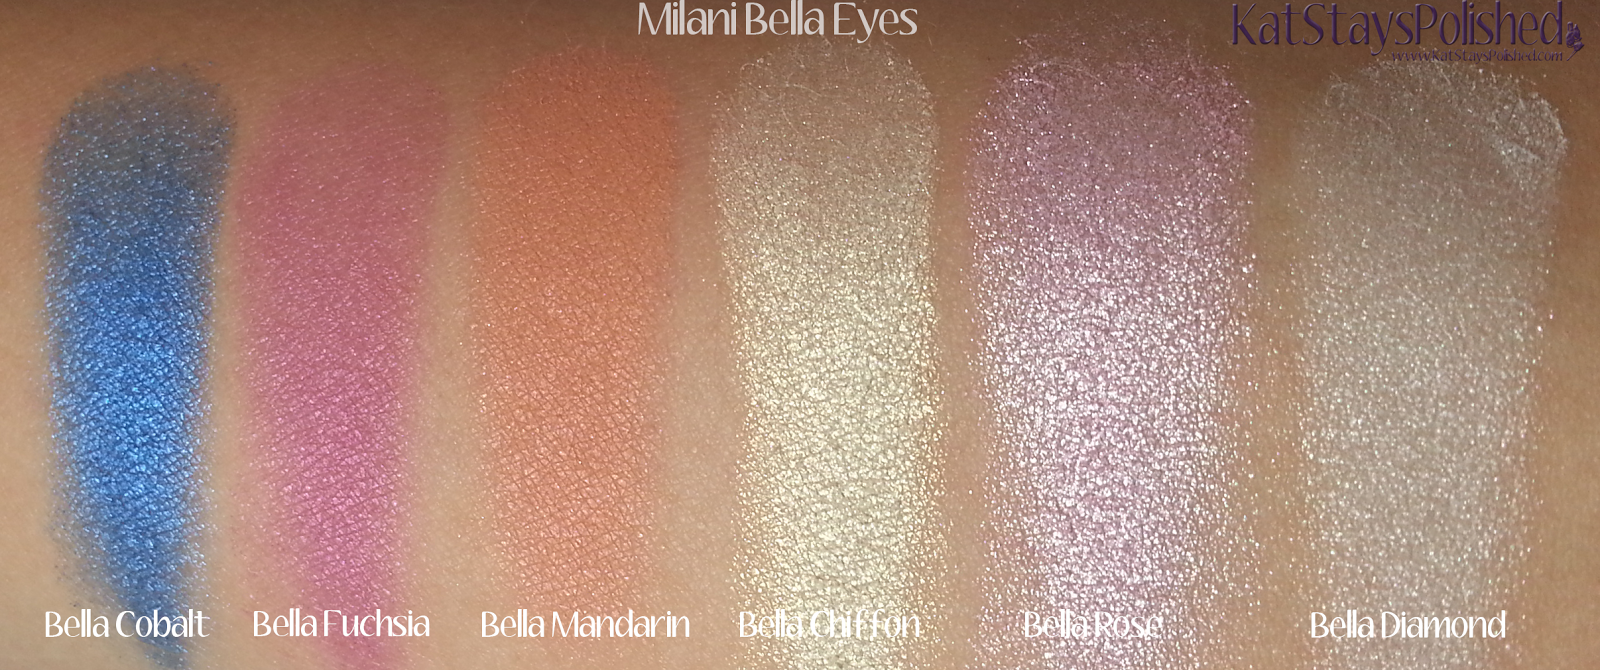 Milani Bella Eyes Gel Powder Eye Shadow - Swatches 25-30 | Kat Stays Polished